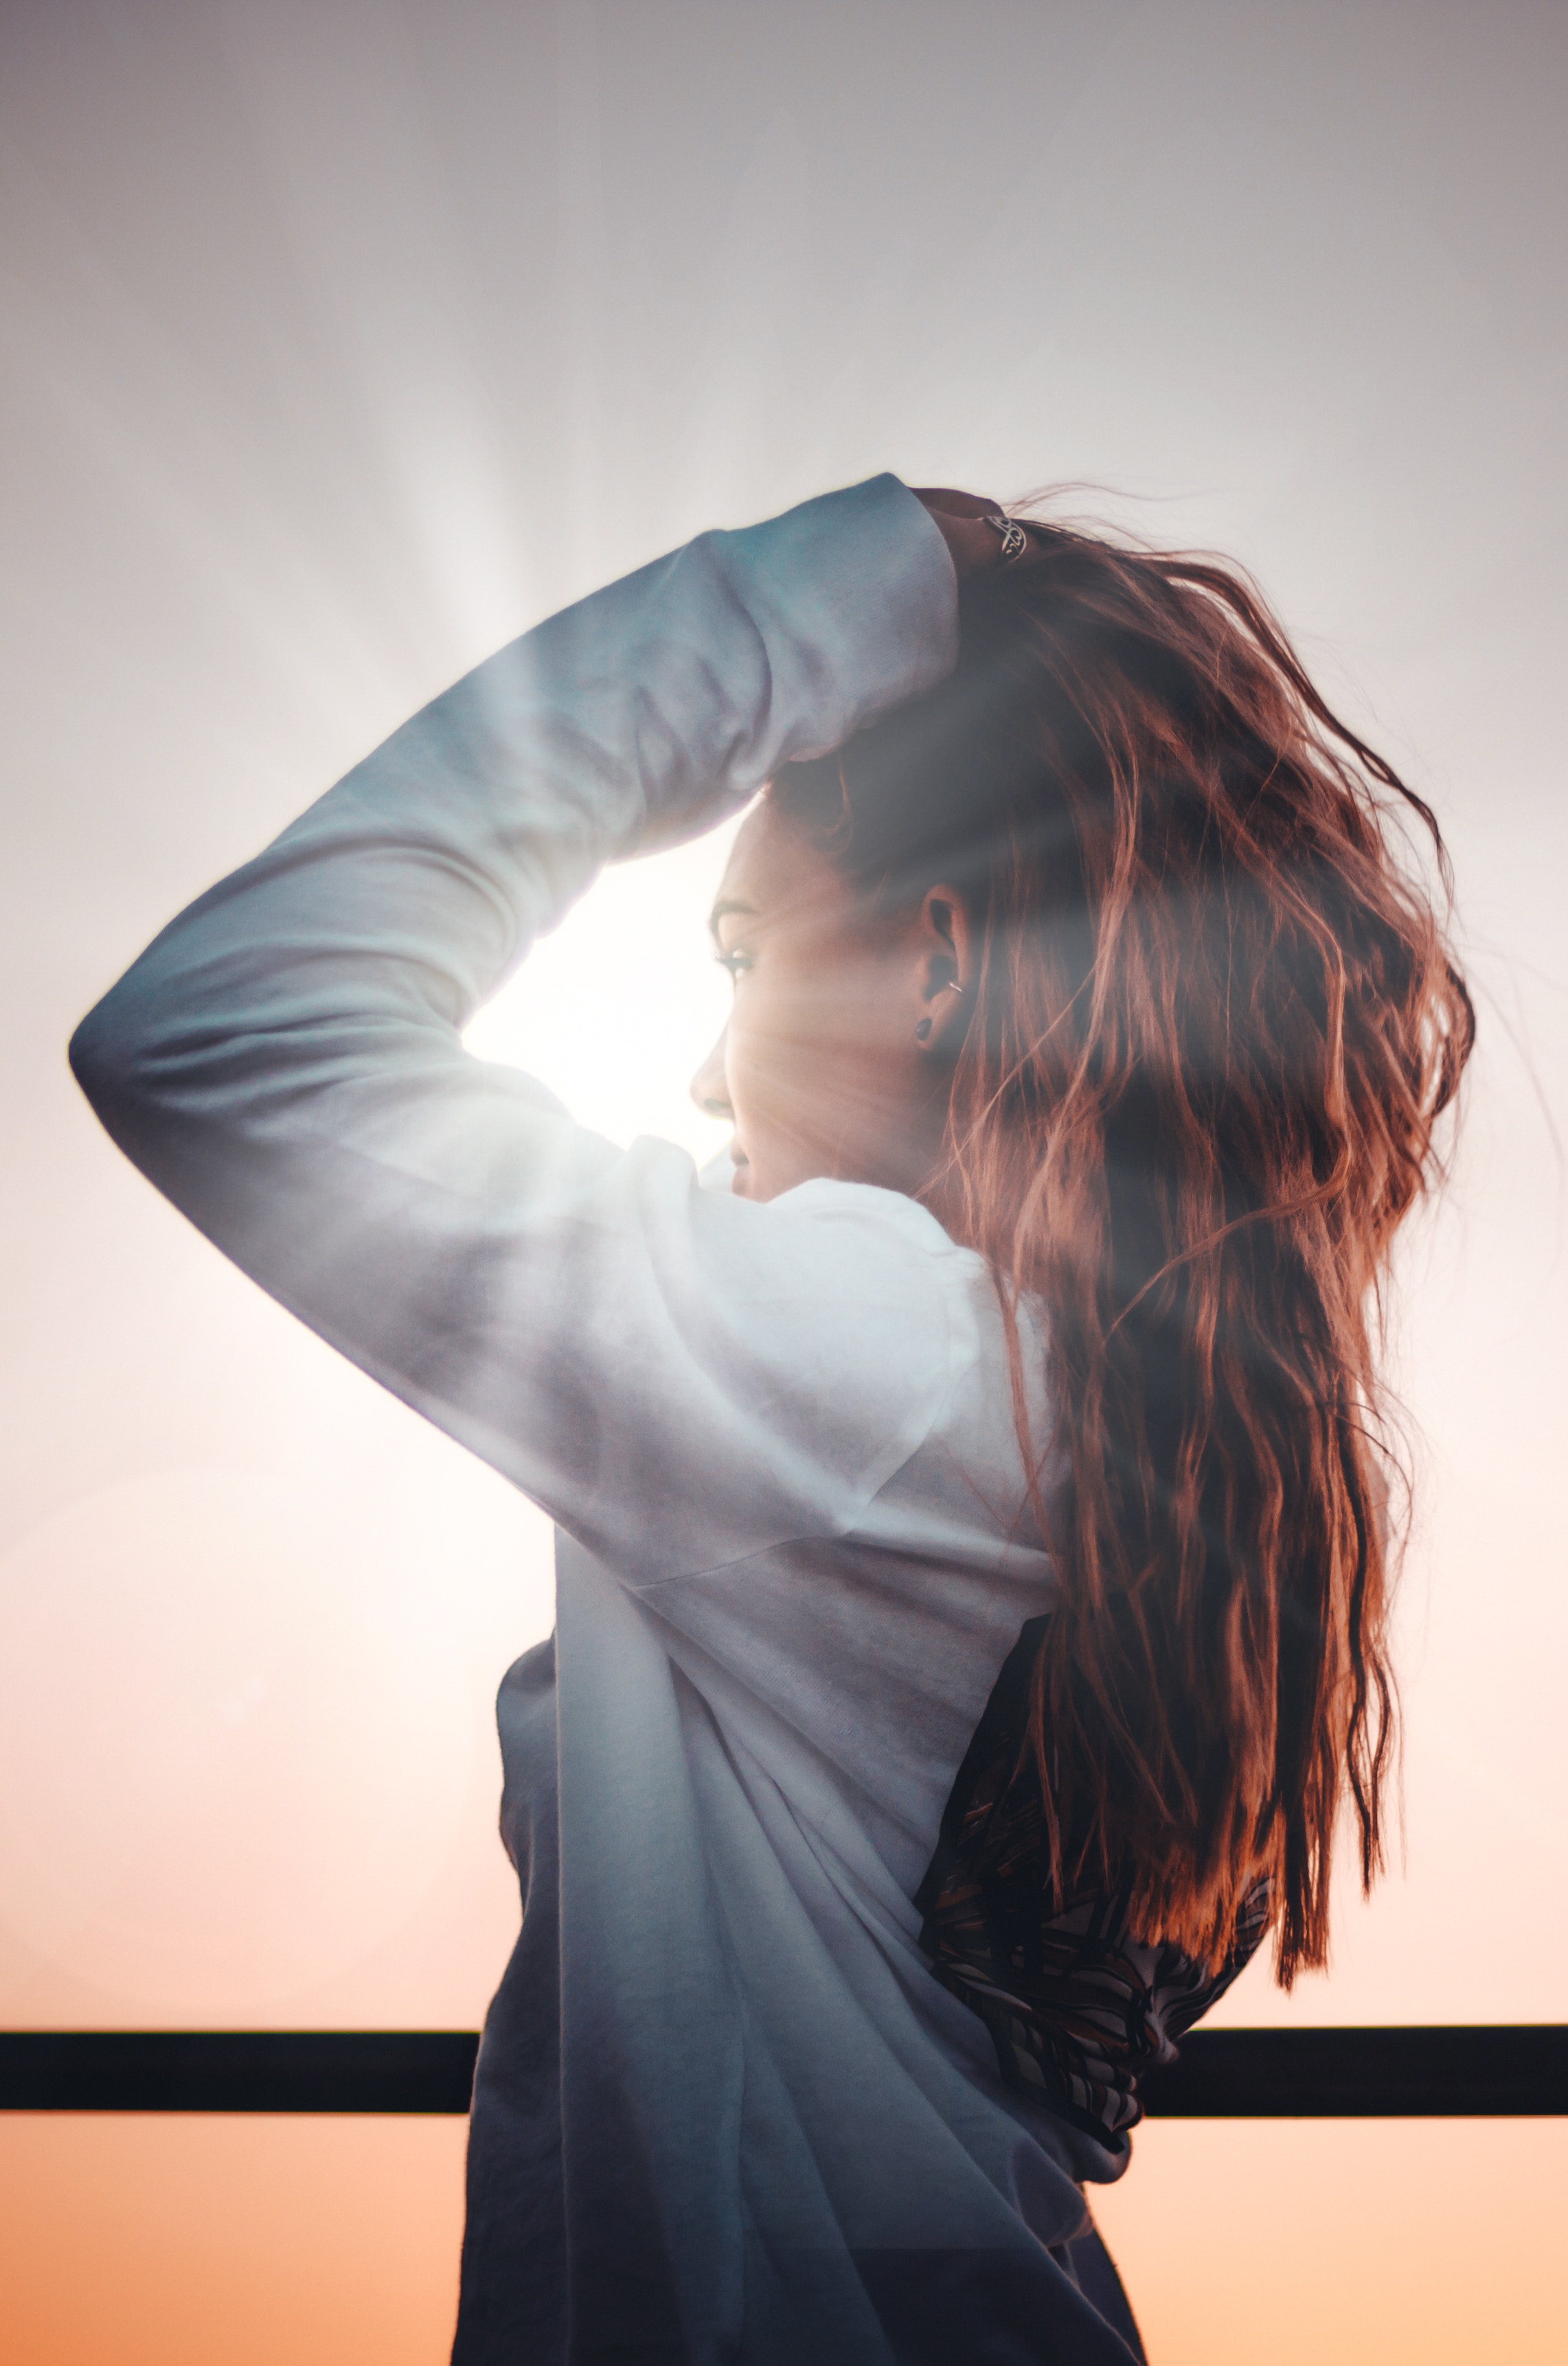 Woman Holding Hair in Natural Light